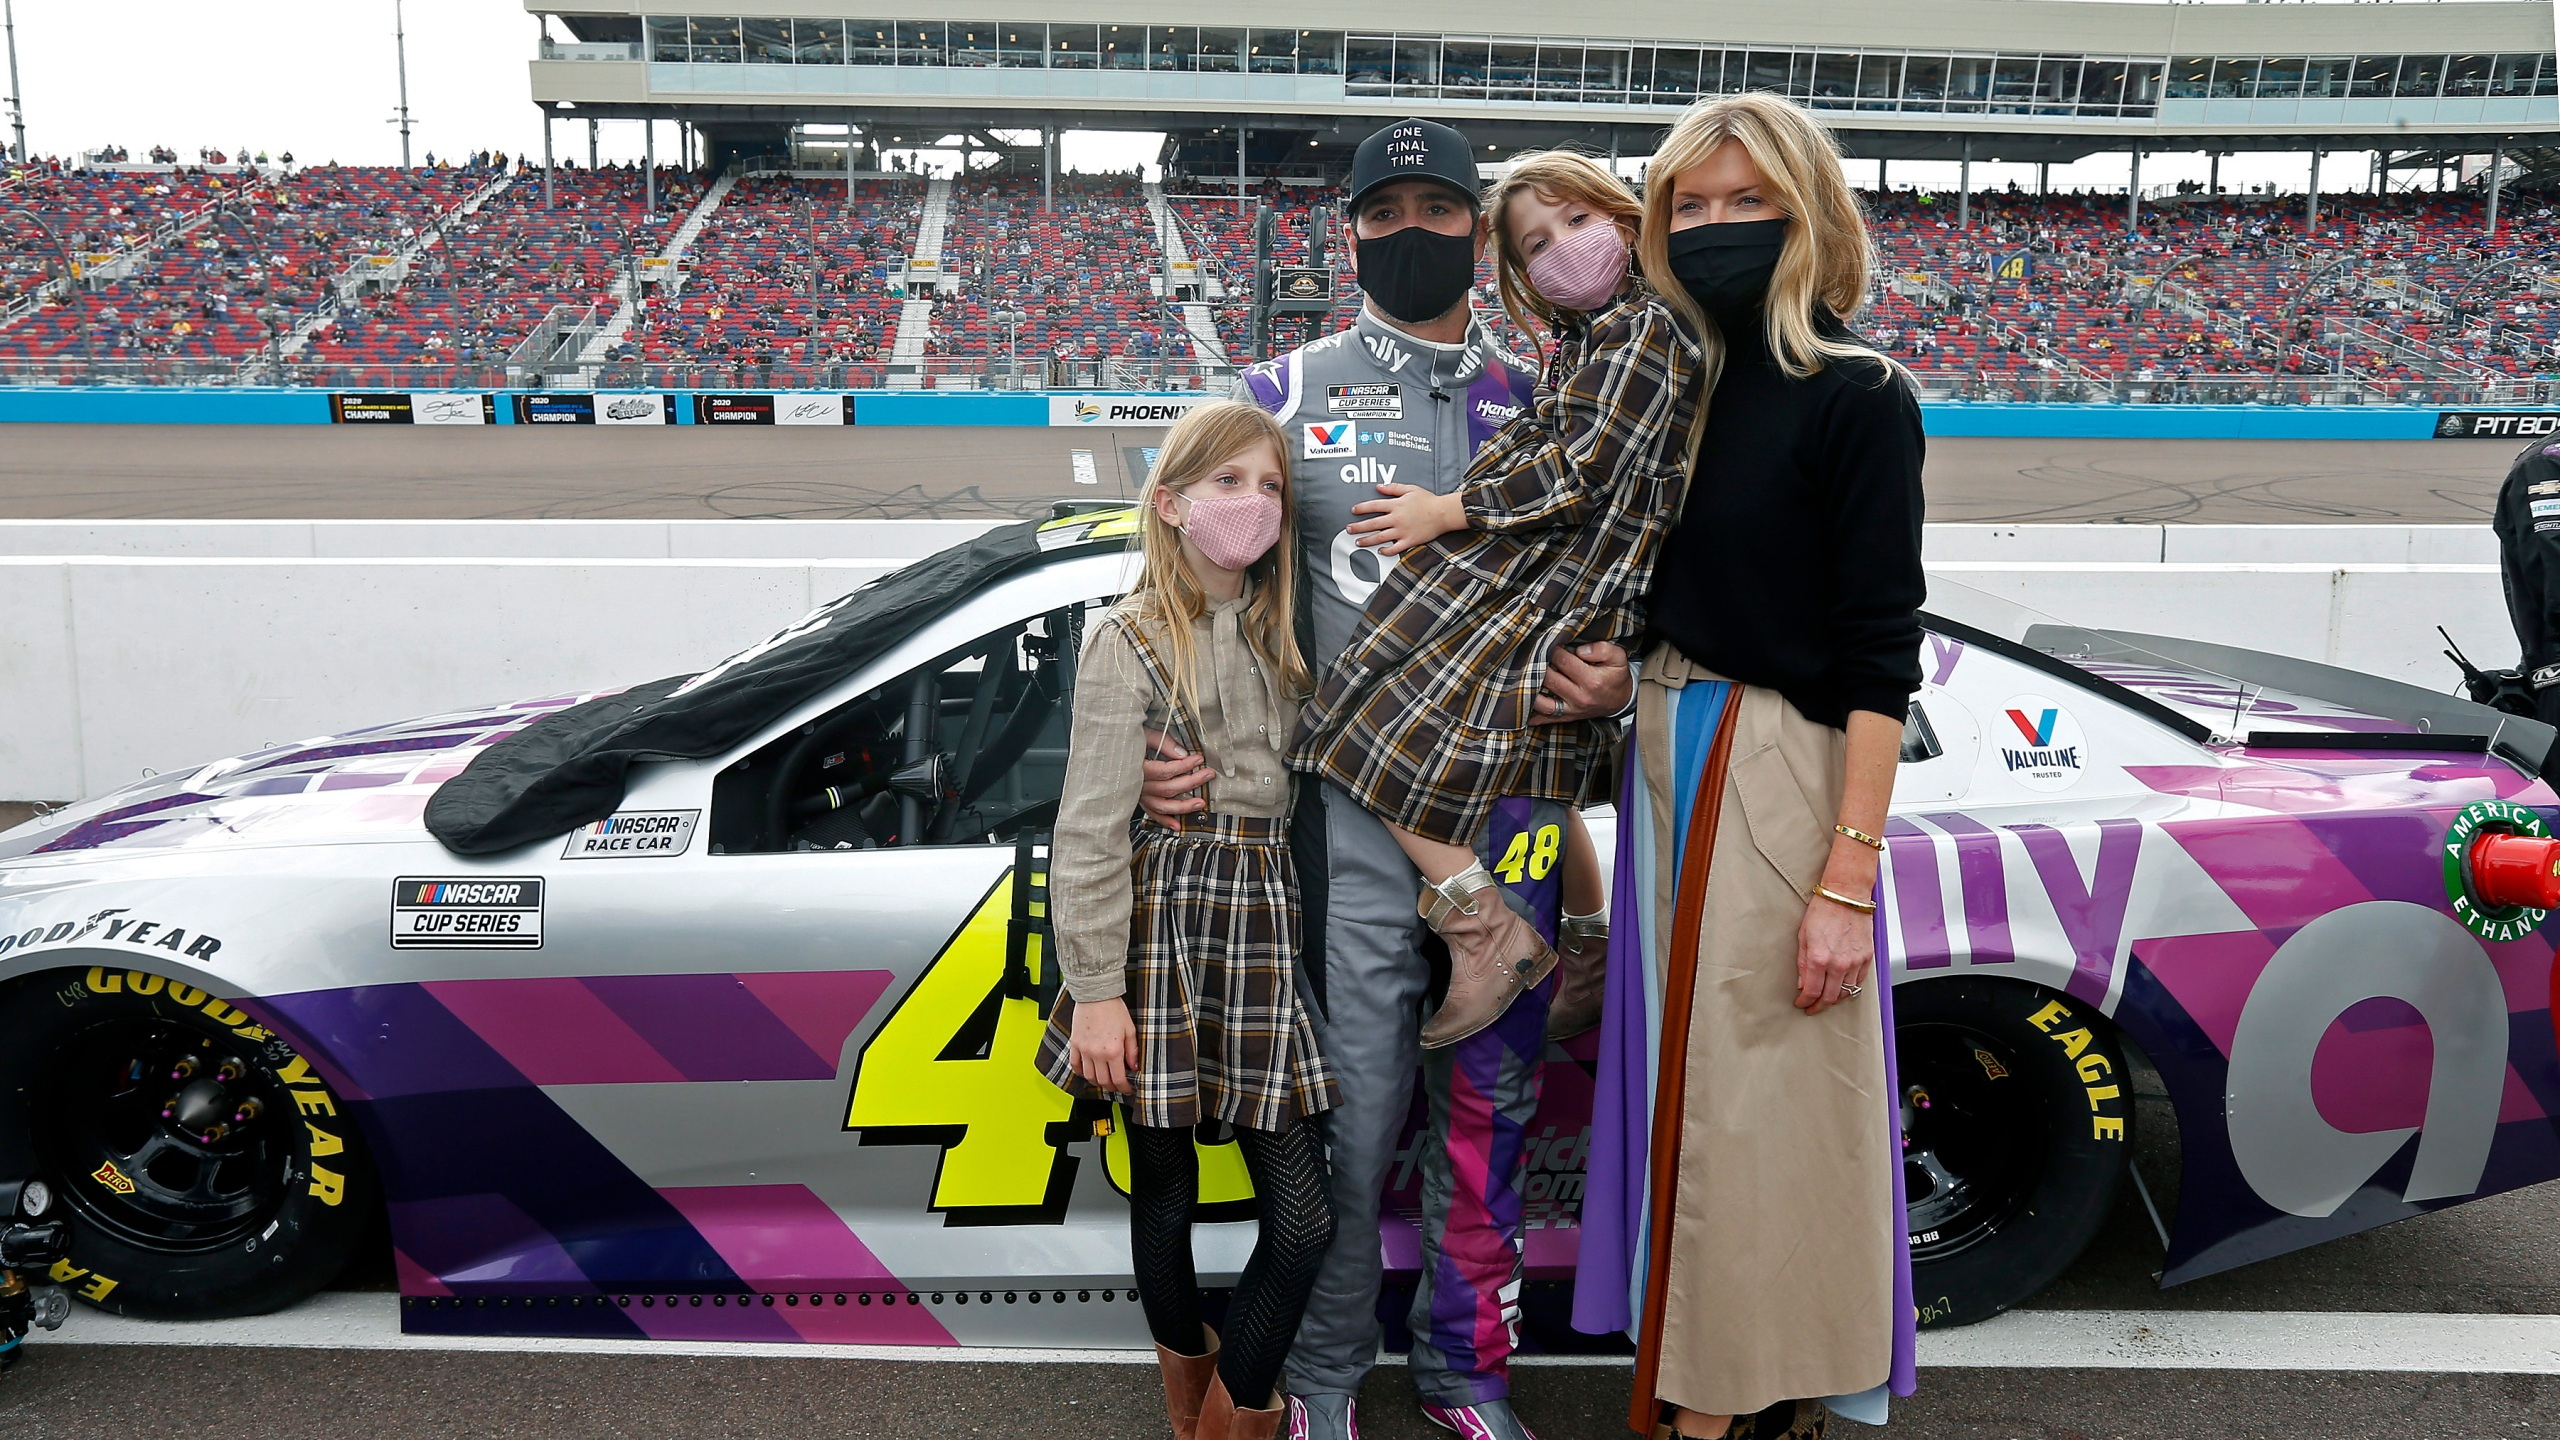 Jimmie Johnson, center, stands with his family on pit road prior to a NASCAR Cup Series auto race at Phoenix Raceway, Sunday, Nov. 8, 2020, in Avondale, Ariz. (AP Photo/Ralph Freso)